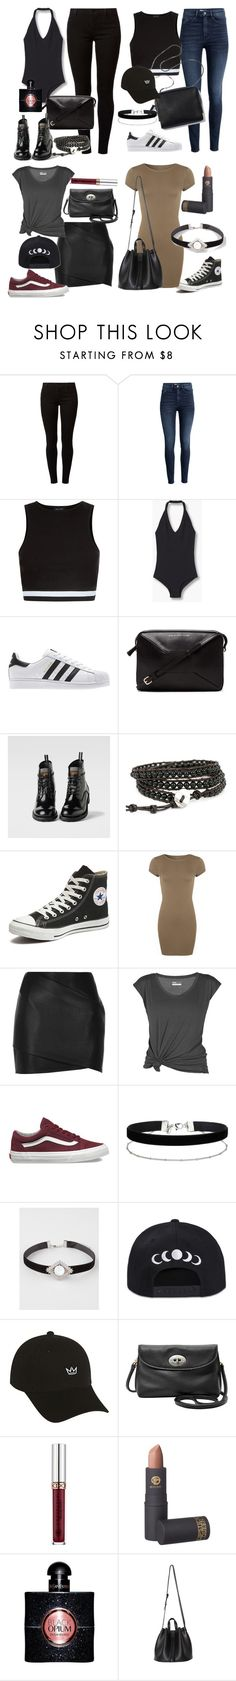 """""""Calum Hood Inspired Outfits for Concert"""" by fivesecondsofinspiration ❤ liked on Polyvore featuring Dorothy Perkins, H&M, New Look, MANGO, Marc by Marc Jacobs, G-Star Raw, Converse, WearAll, River Island and Lija"""